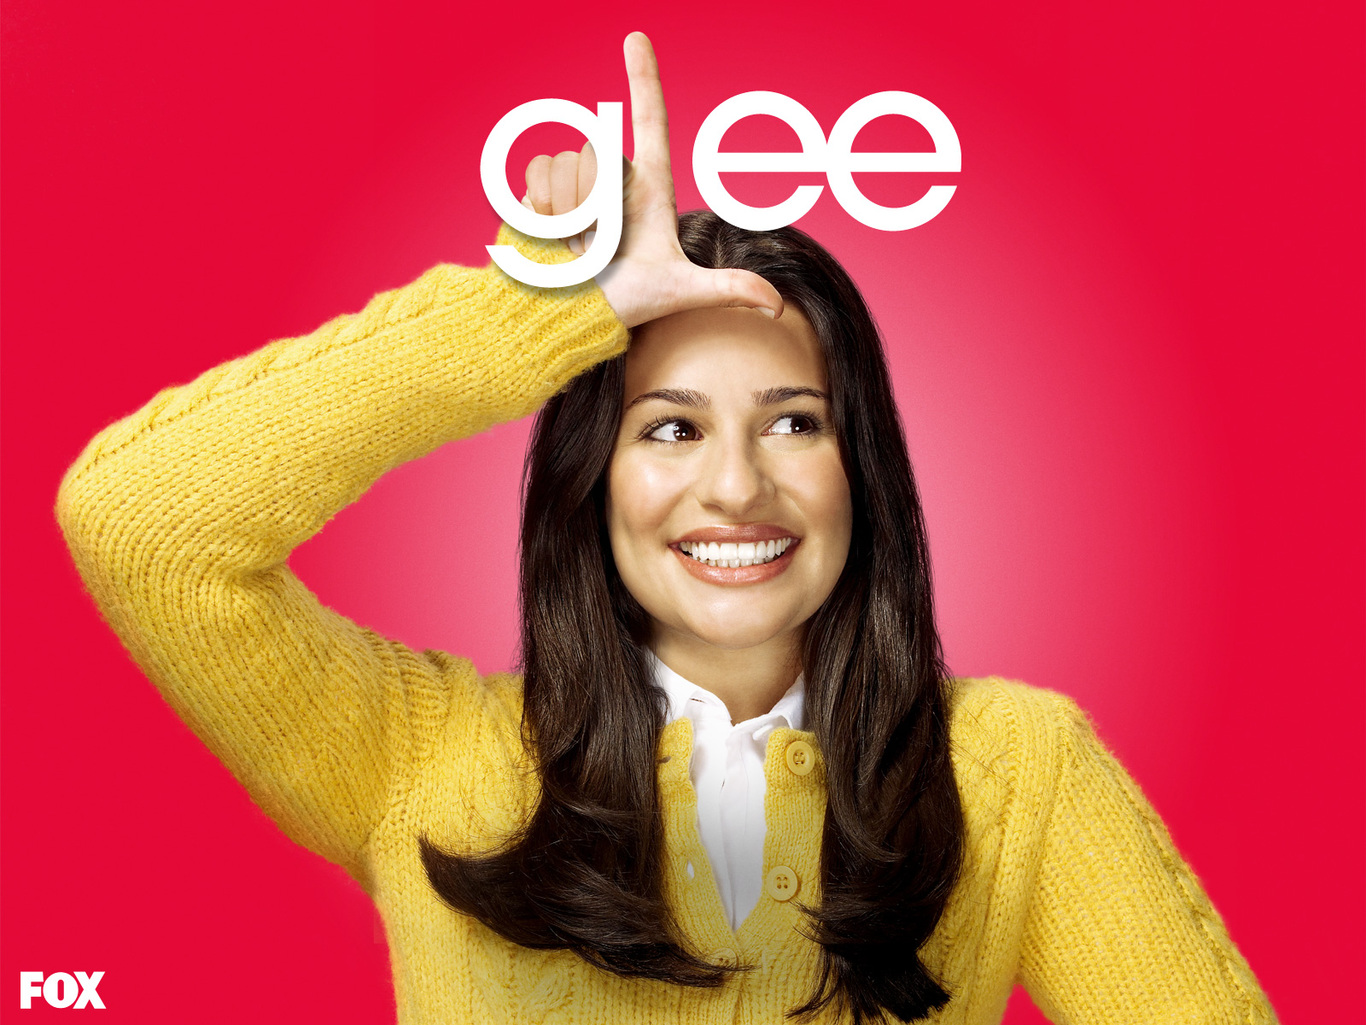 is rachel from glee dating finn In which episode of glee do rachel and finn start going out i love glee and i need to watch rachel thinks that they are dating in episode 1x14 but.